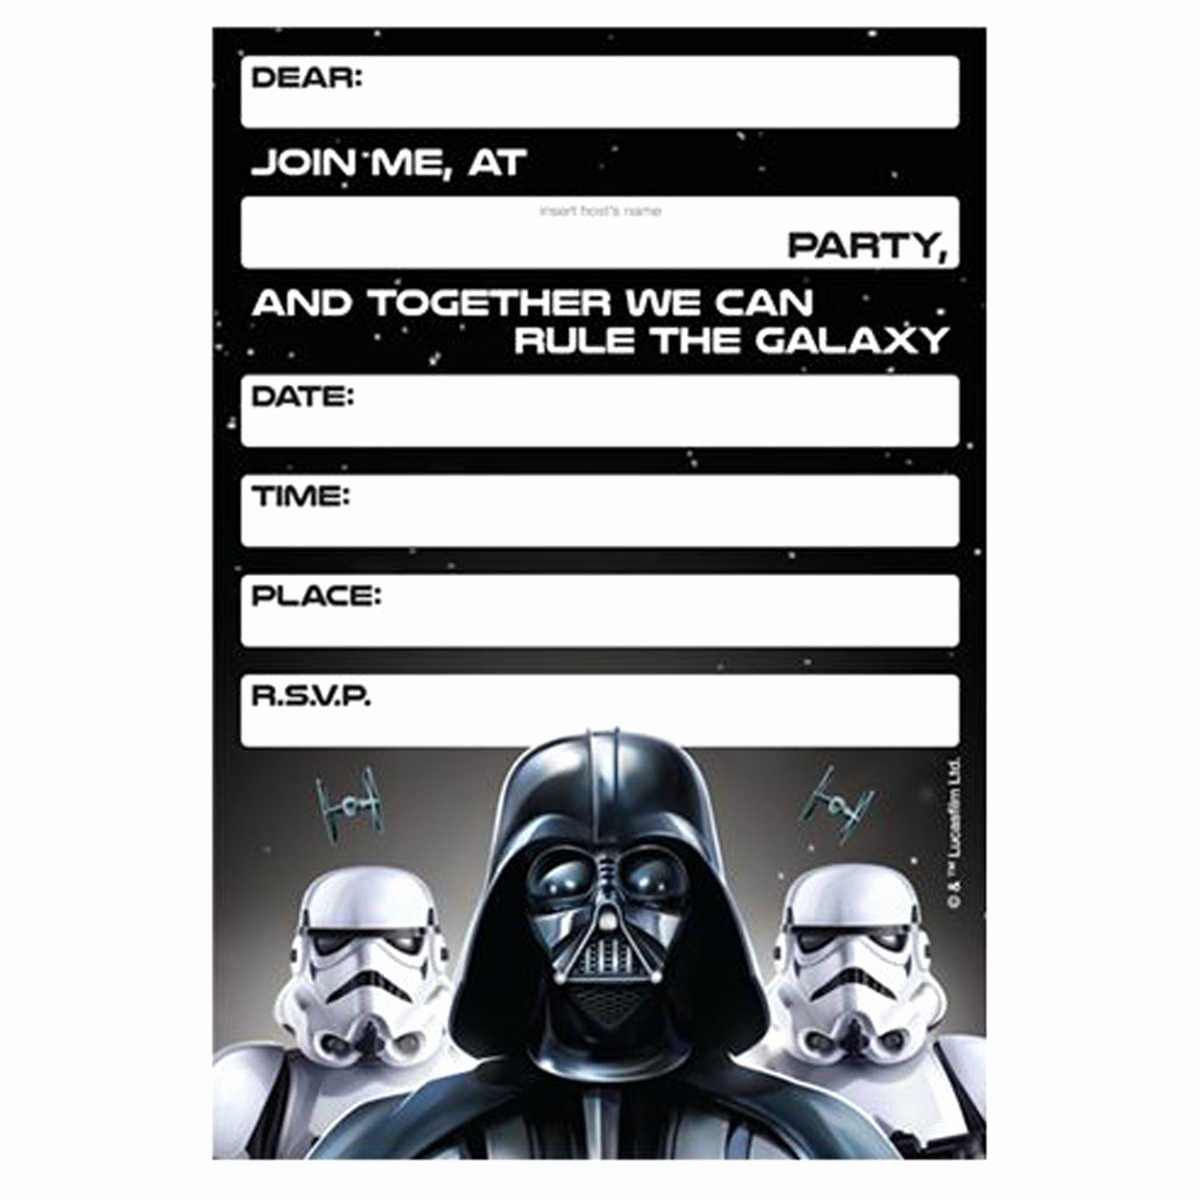 Star Wars Birthday Invitation Wording New 32 Amazing Star Wars Birthday Invitations